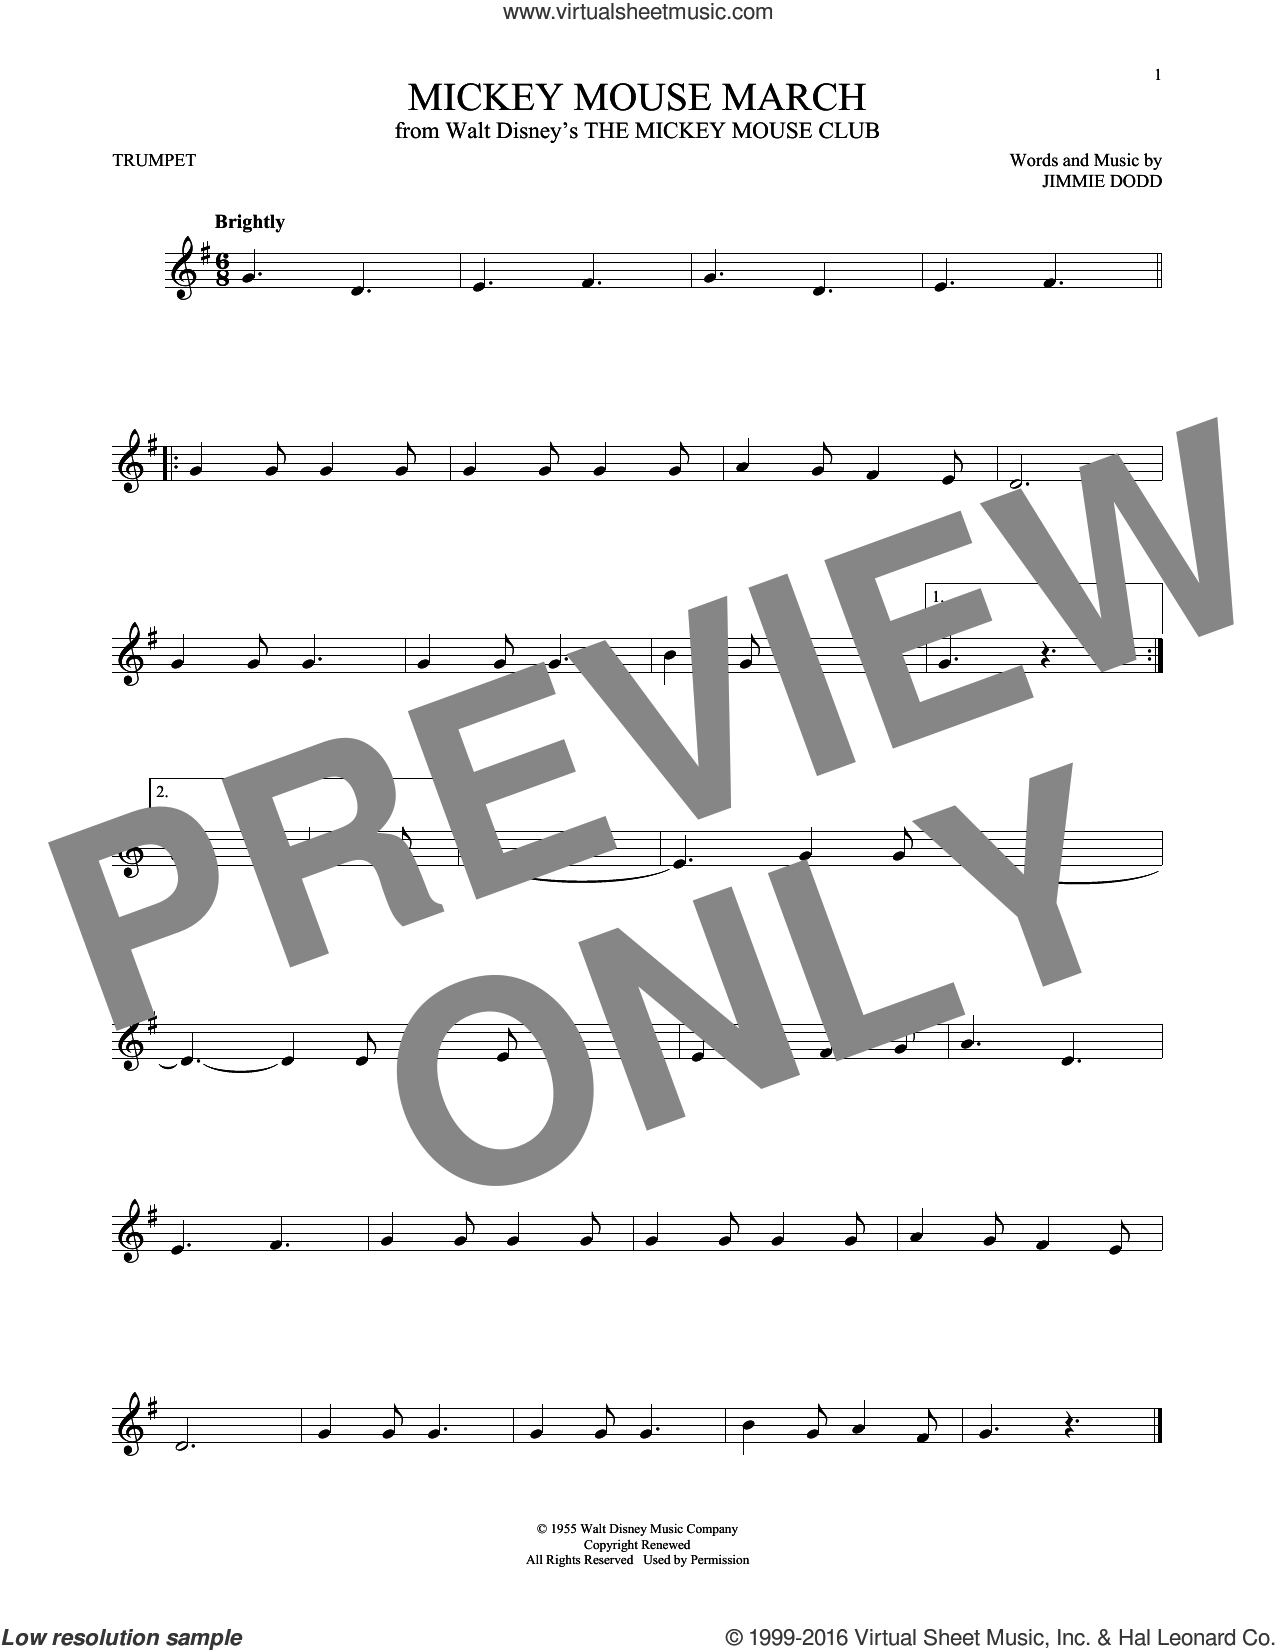 Mickey Mouse March sheet music for trumpet solo by Jimmie Dodd, intermediate skill level